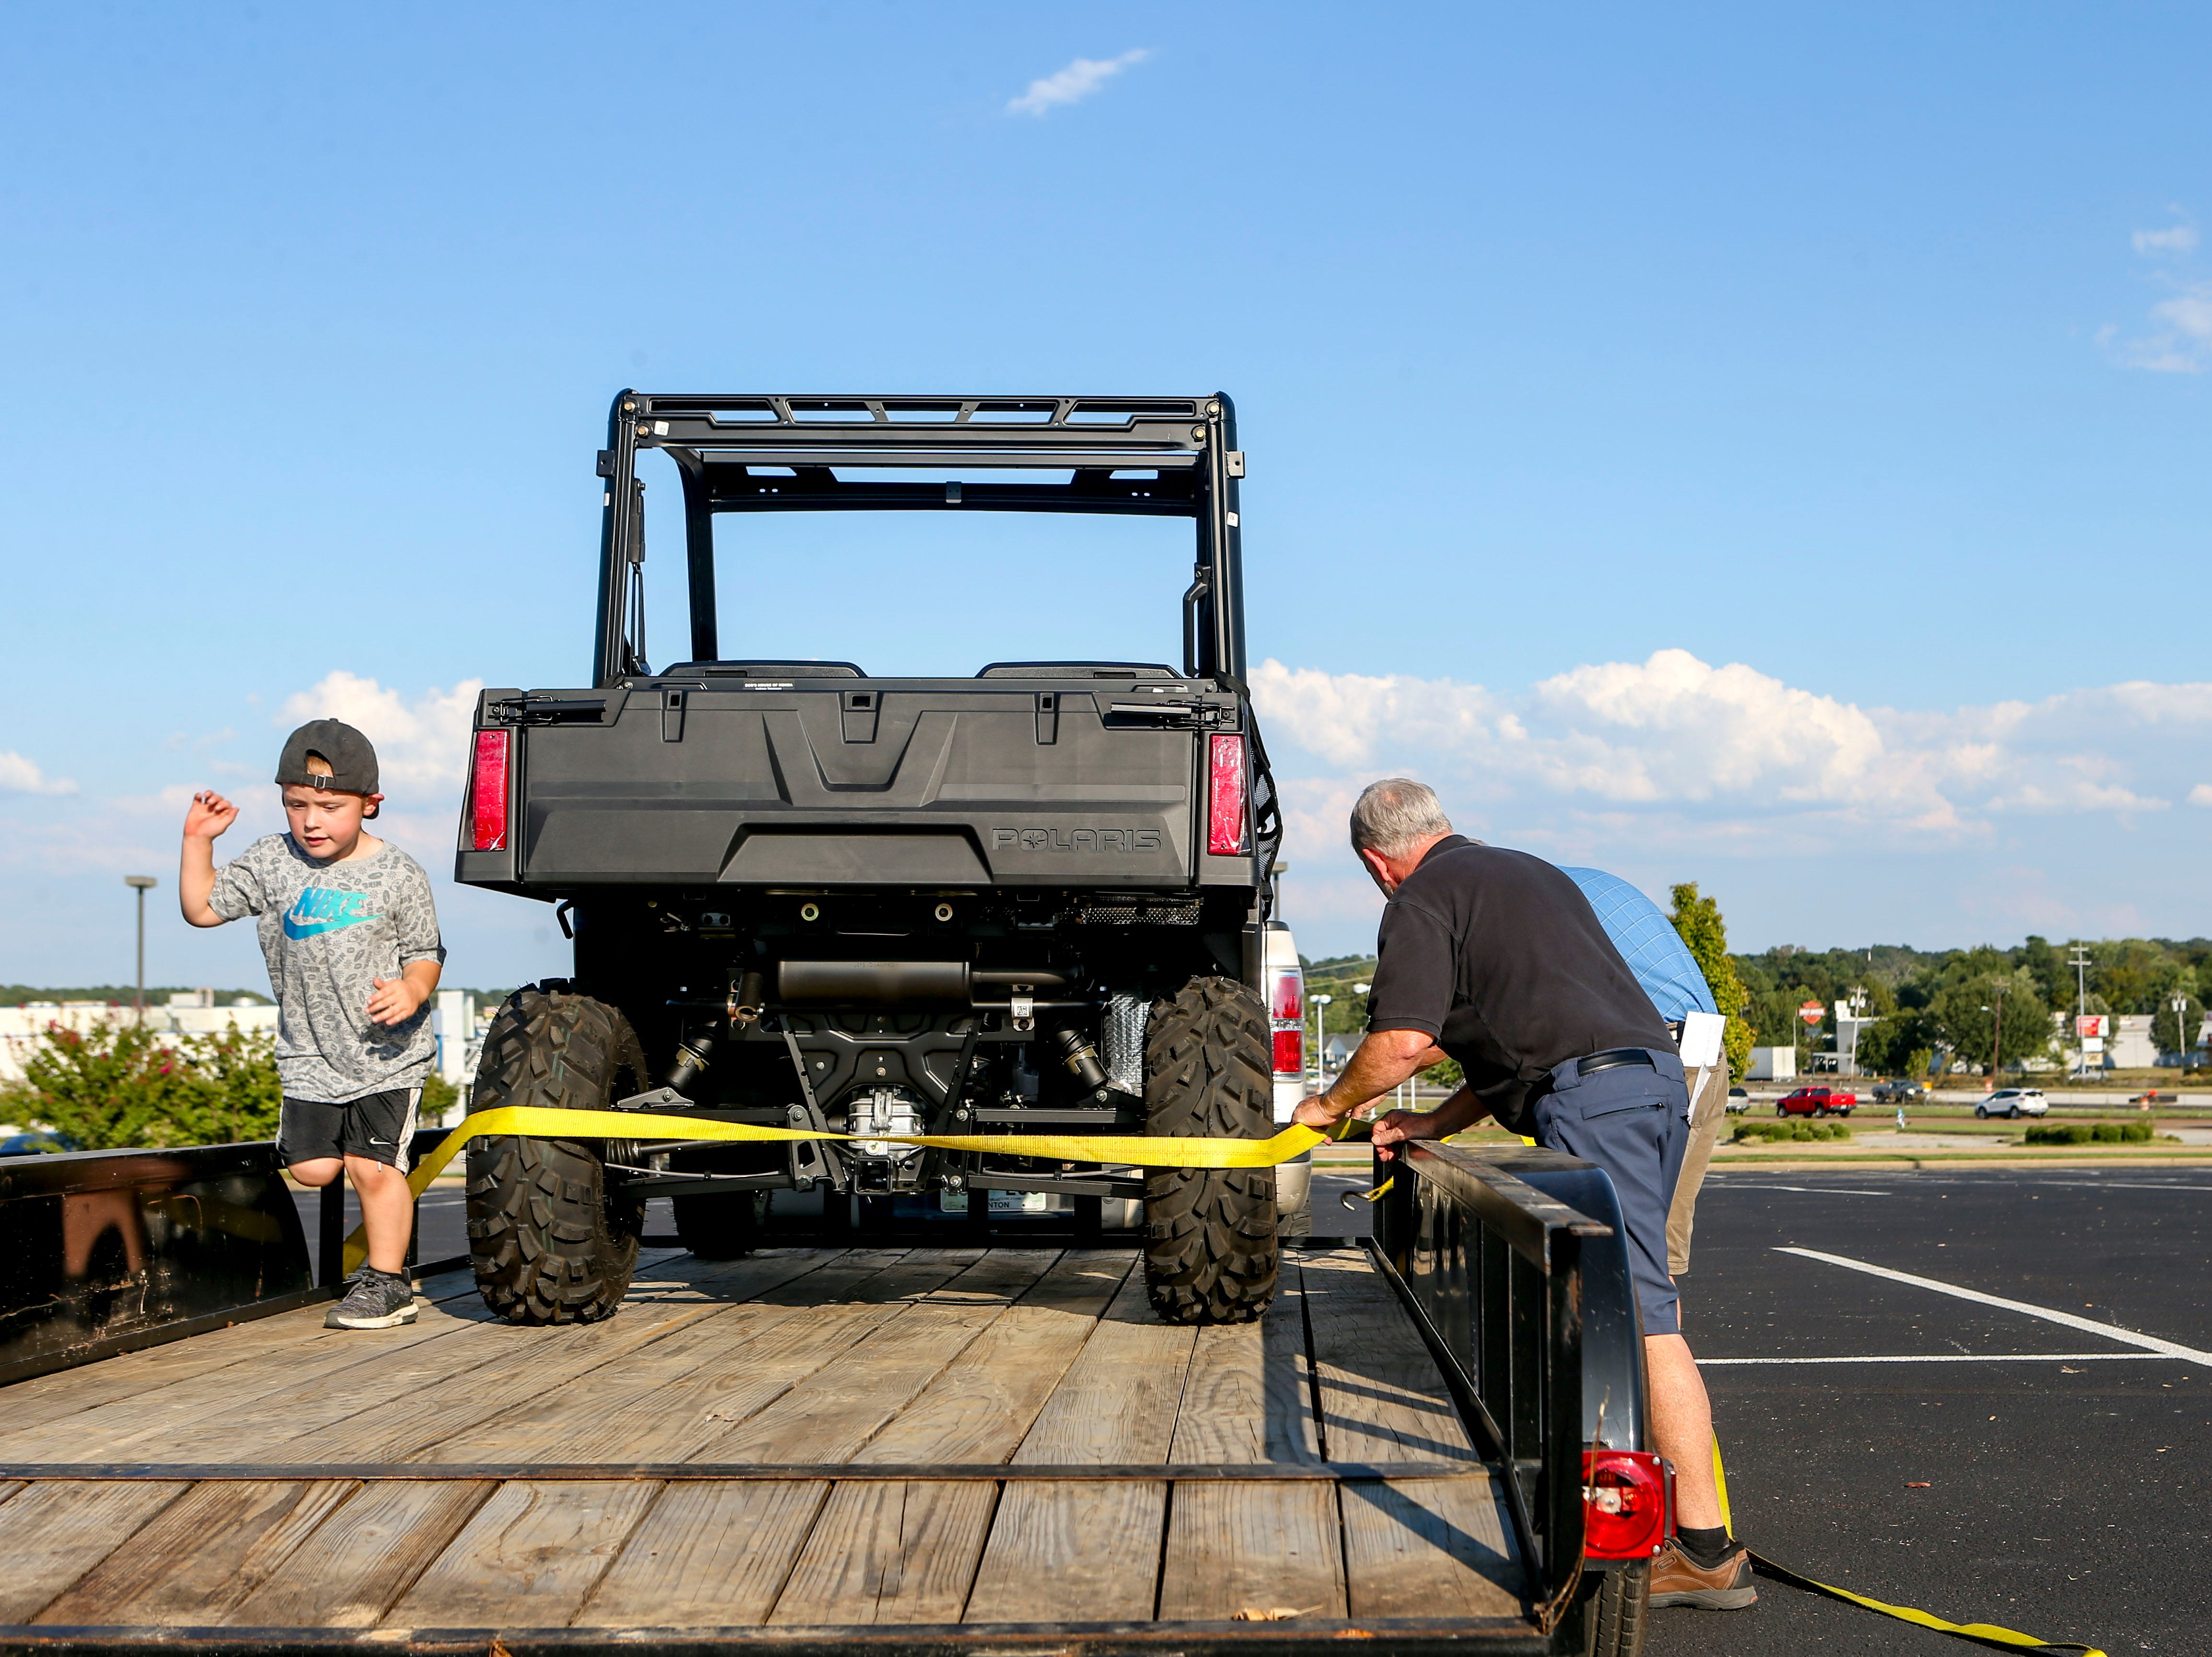 John Patrick Coleman, 4, left, runs around on top of the trailer while Bob Beasley and John Coleman, right, tighten down straps at Bob's House of Honda in Jackson, Tenn., on Thursday, Sept. 20, 2018.